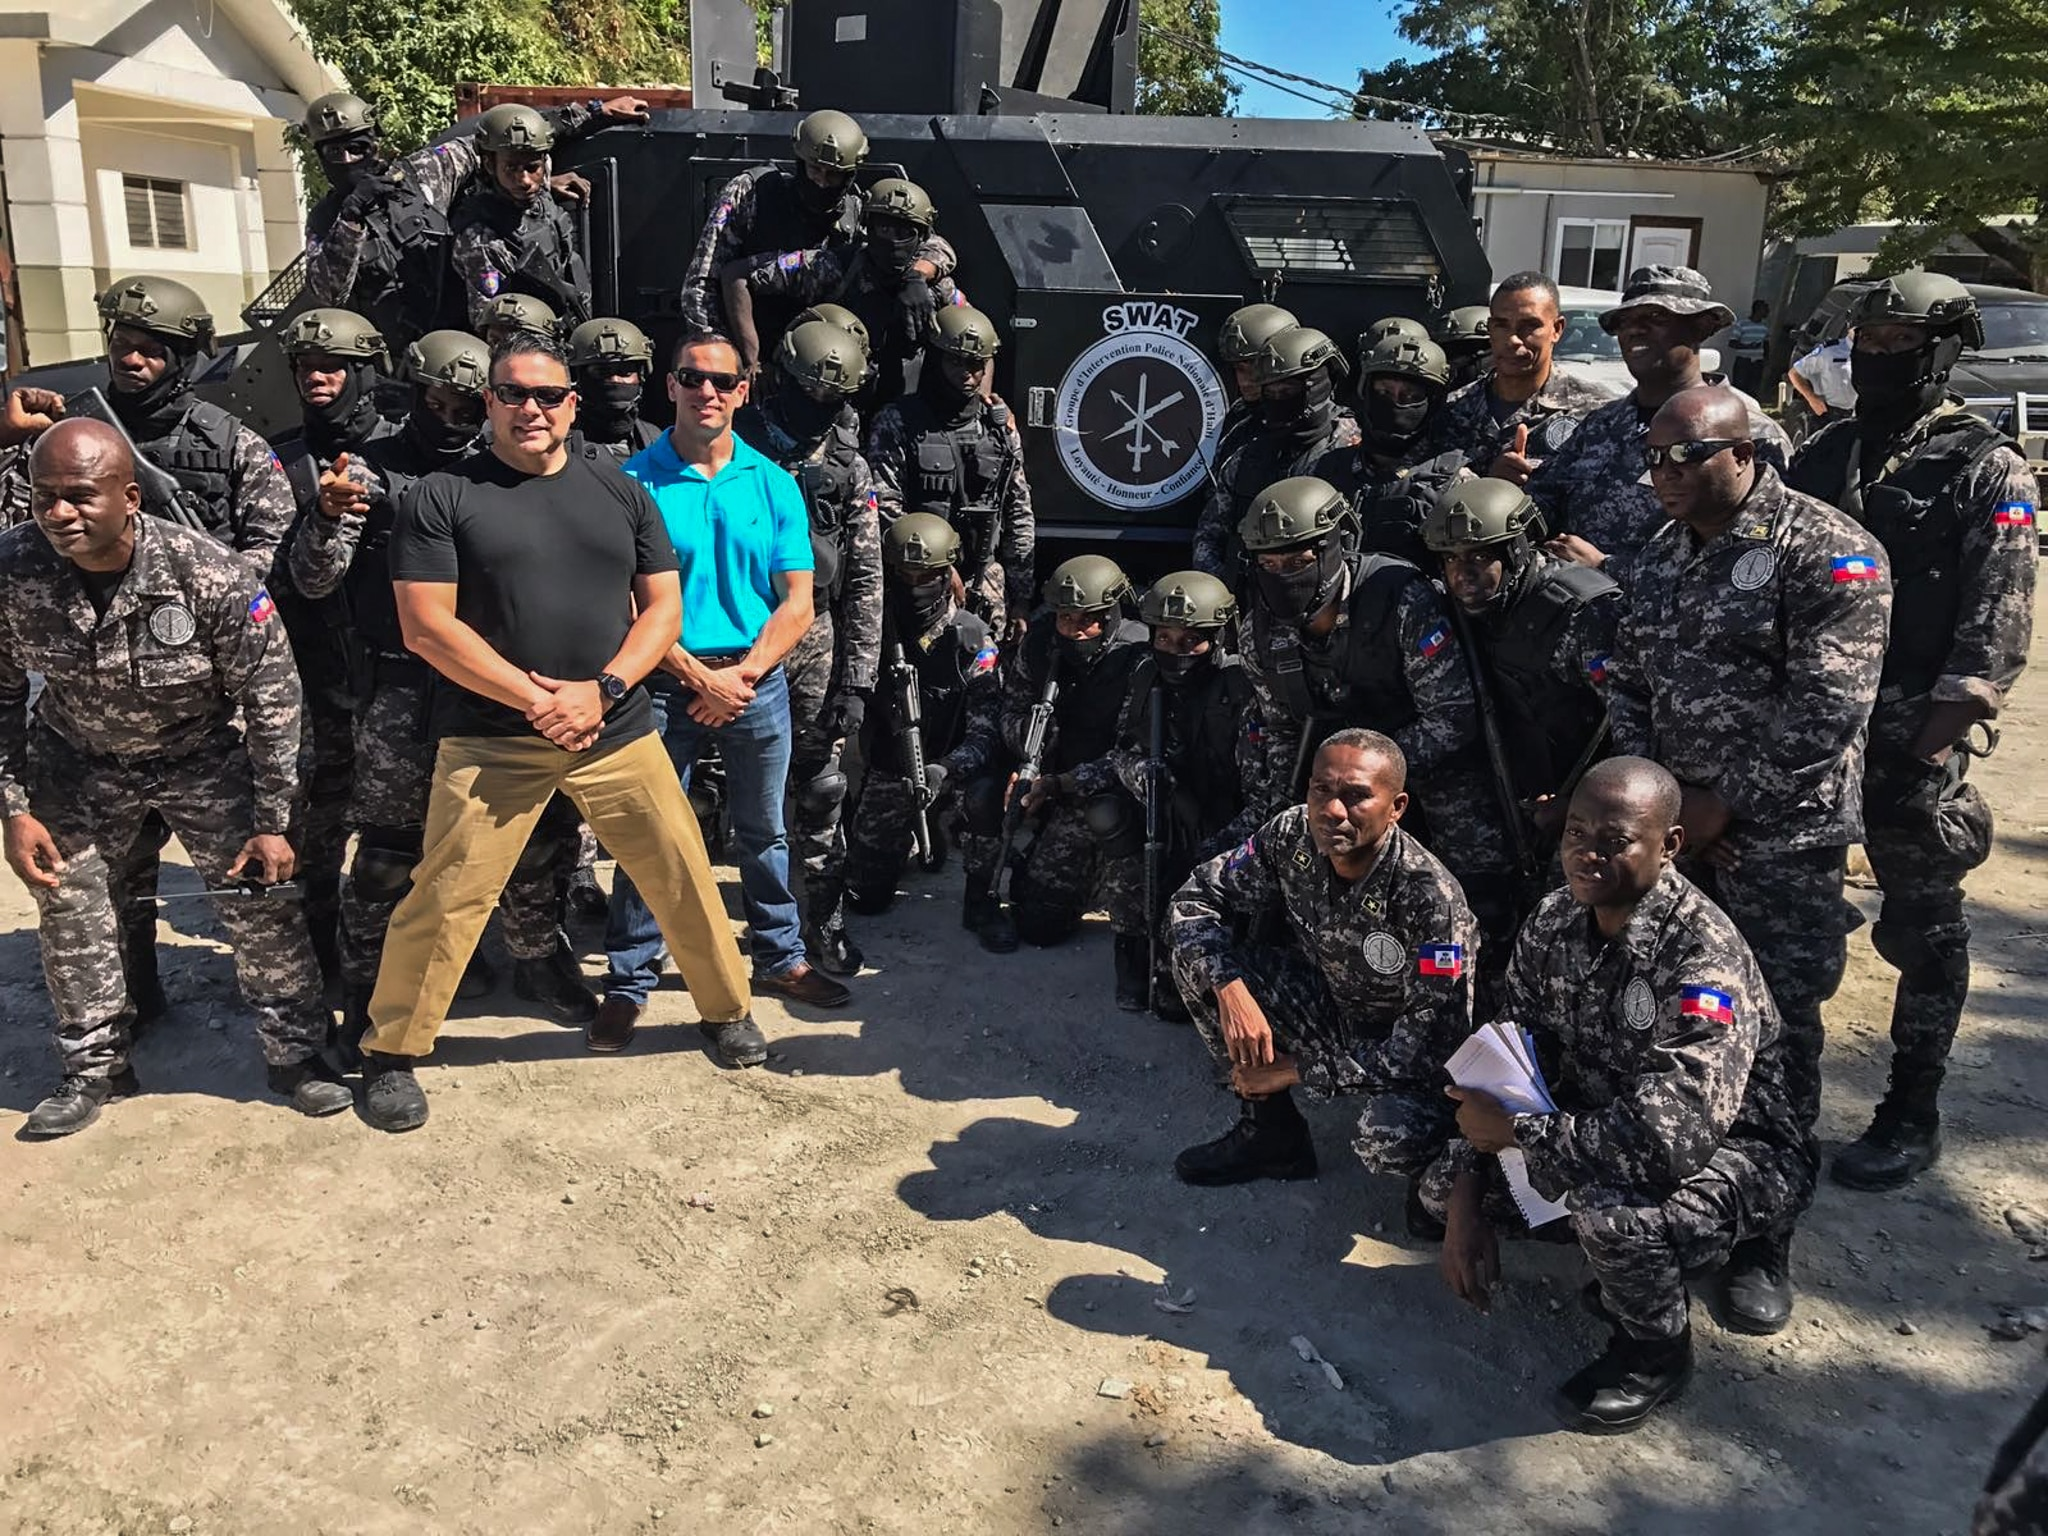 Uniformed people posing in a group (© Sergeant Oscar D. Pla, Miami-Dade Police Department)